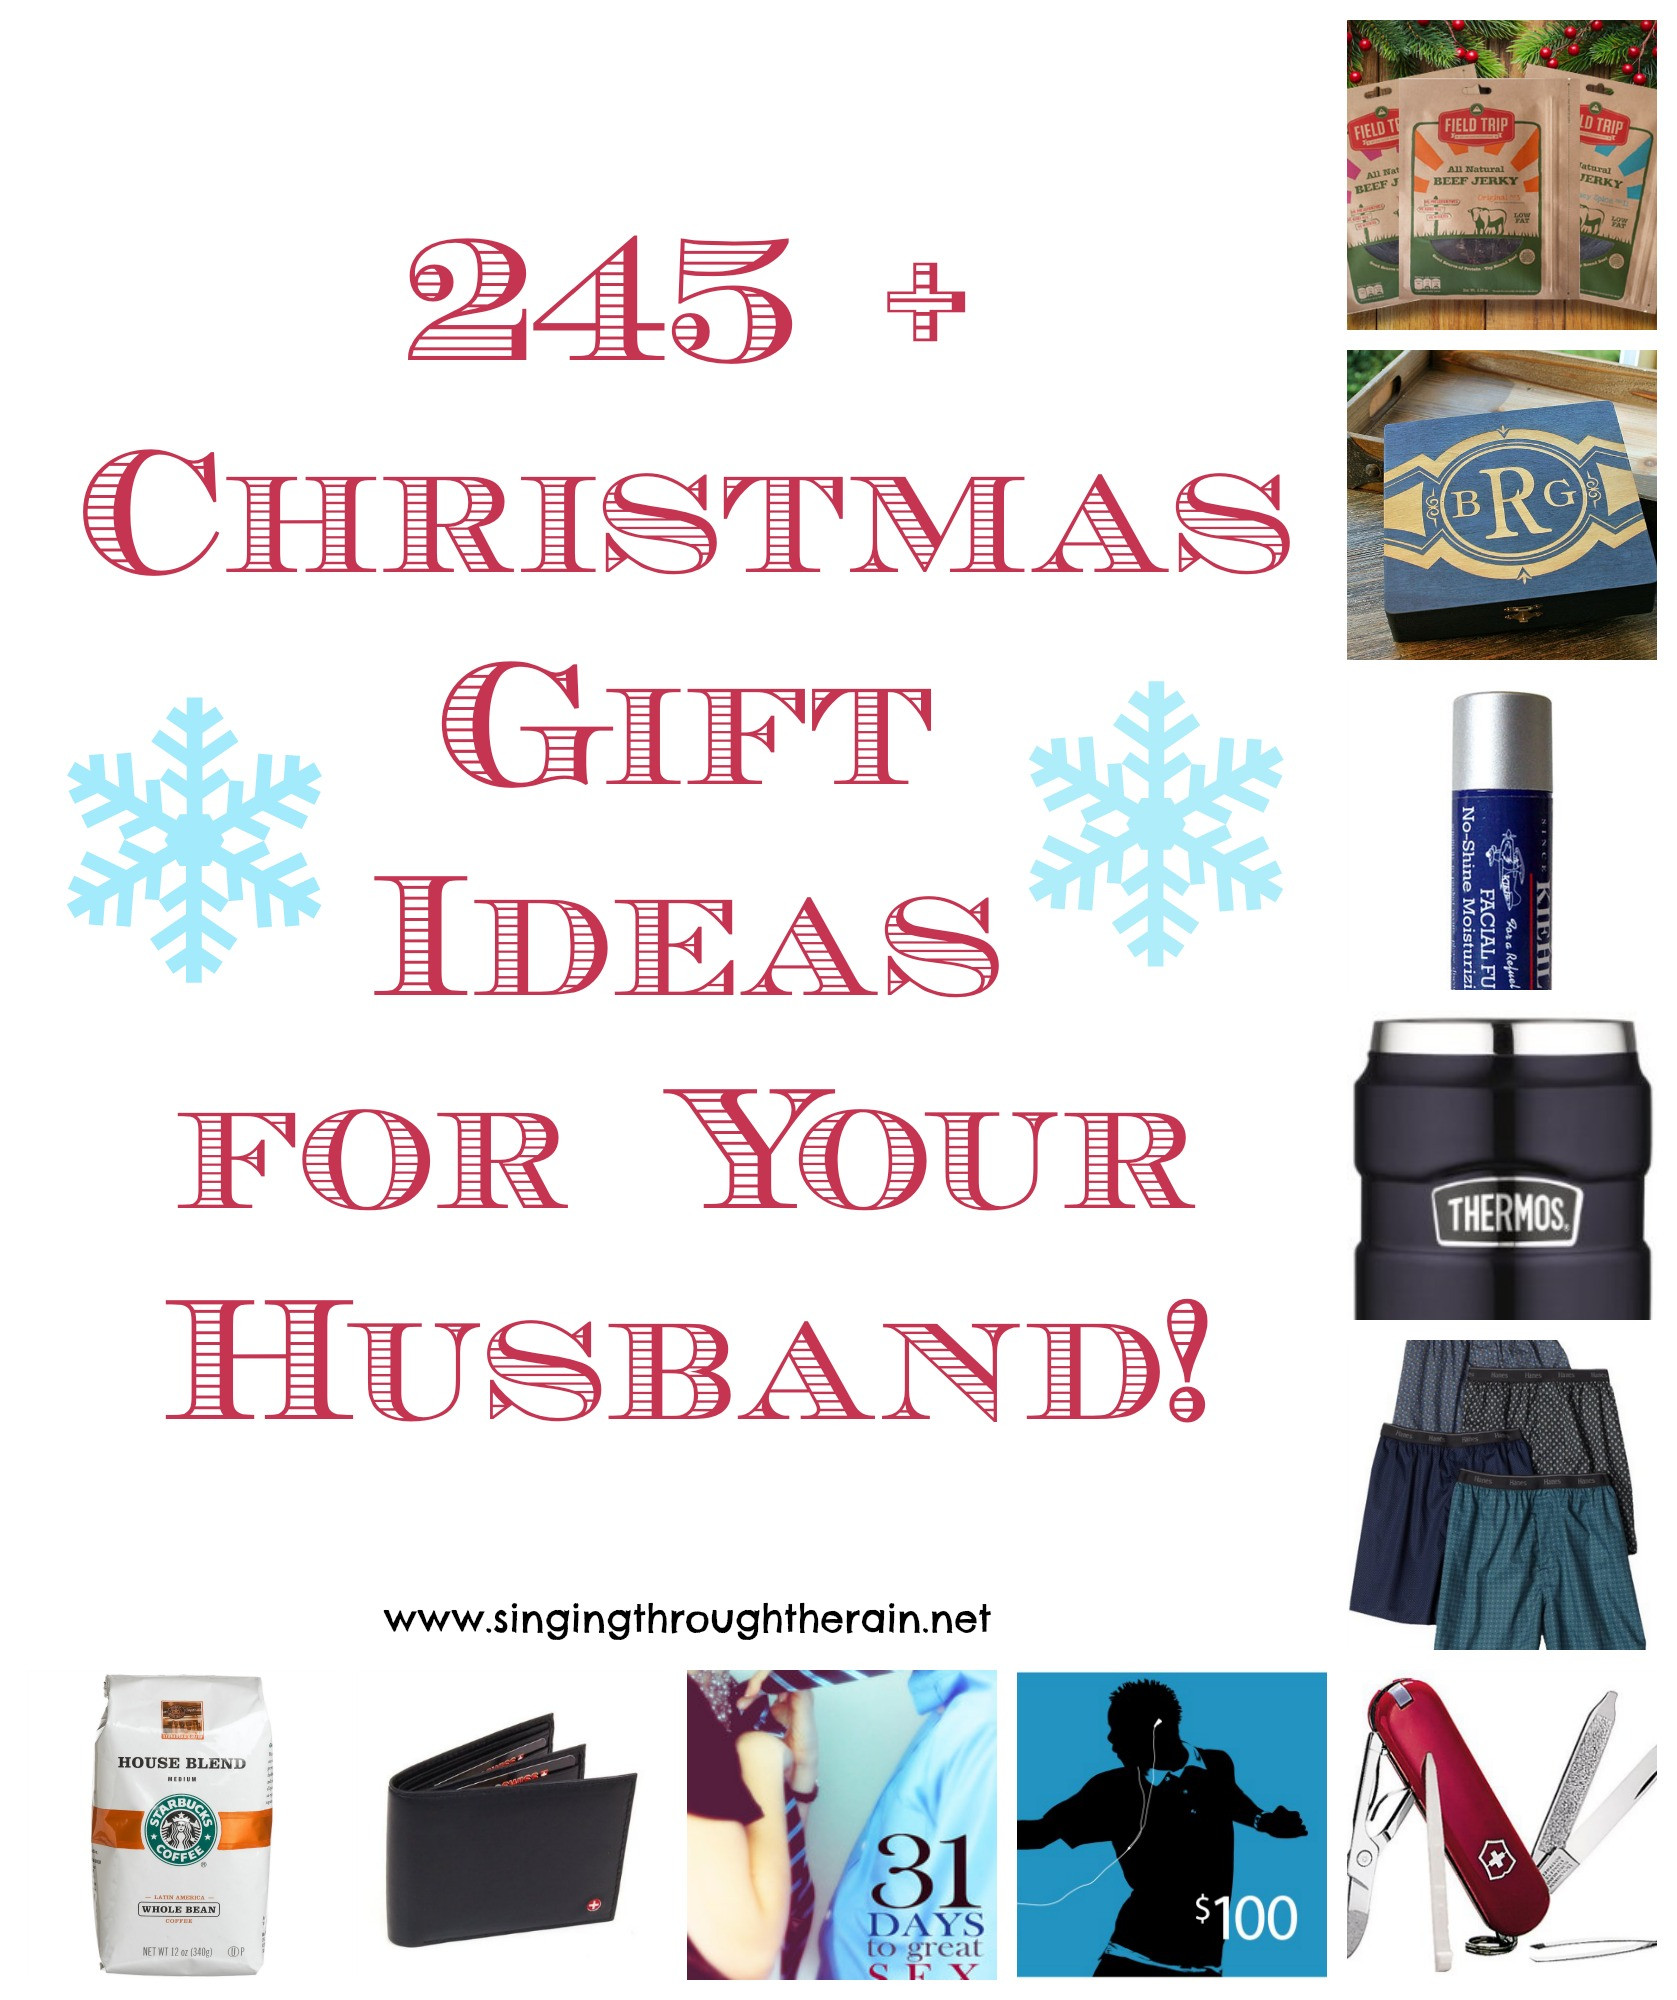 Best ideas about Christmas Gift Ideas For My Husband . Save or Pin 245 Christmas Gift Ideas for Your Husband Now.